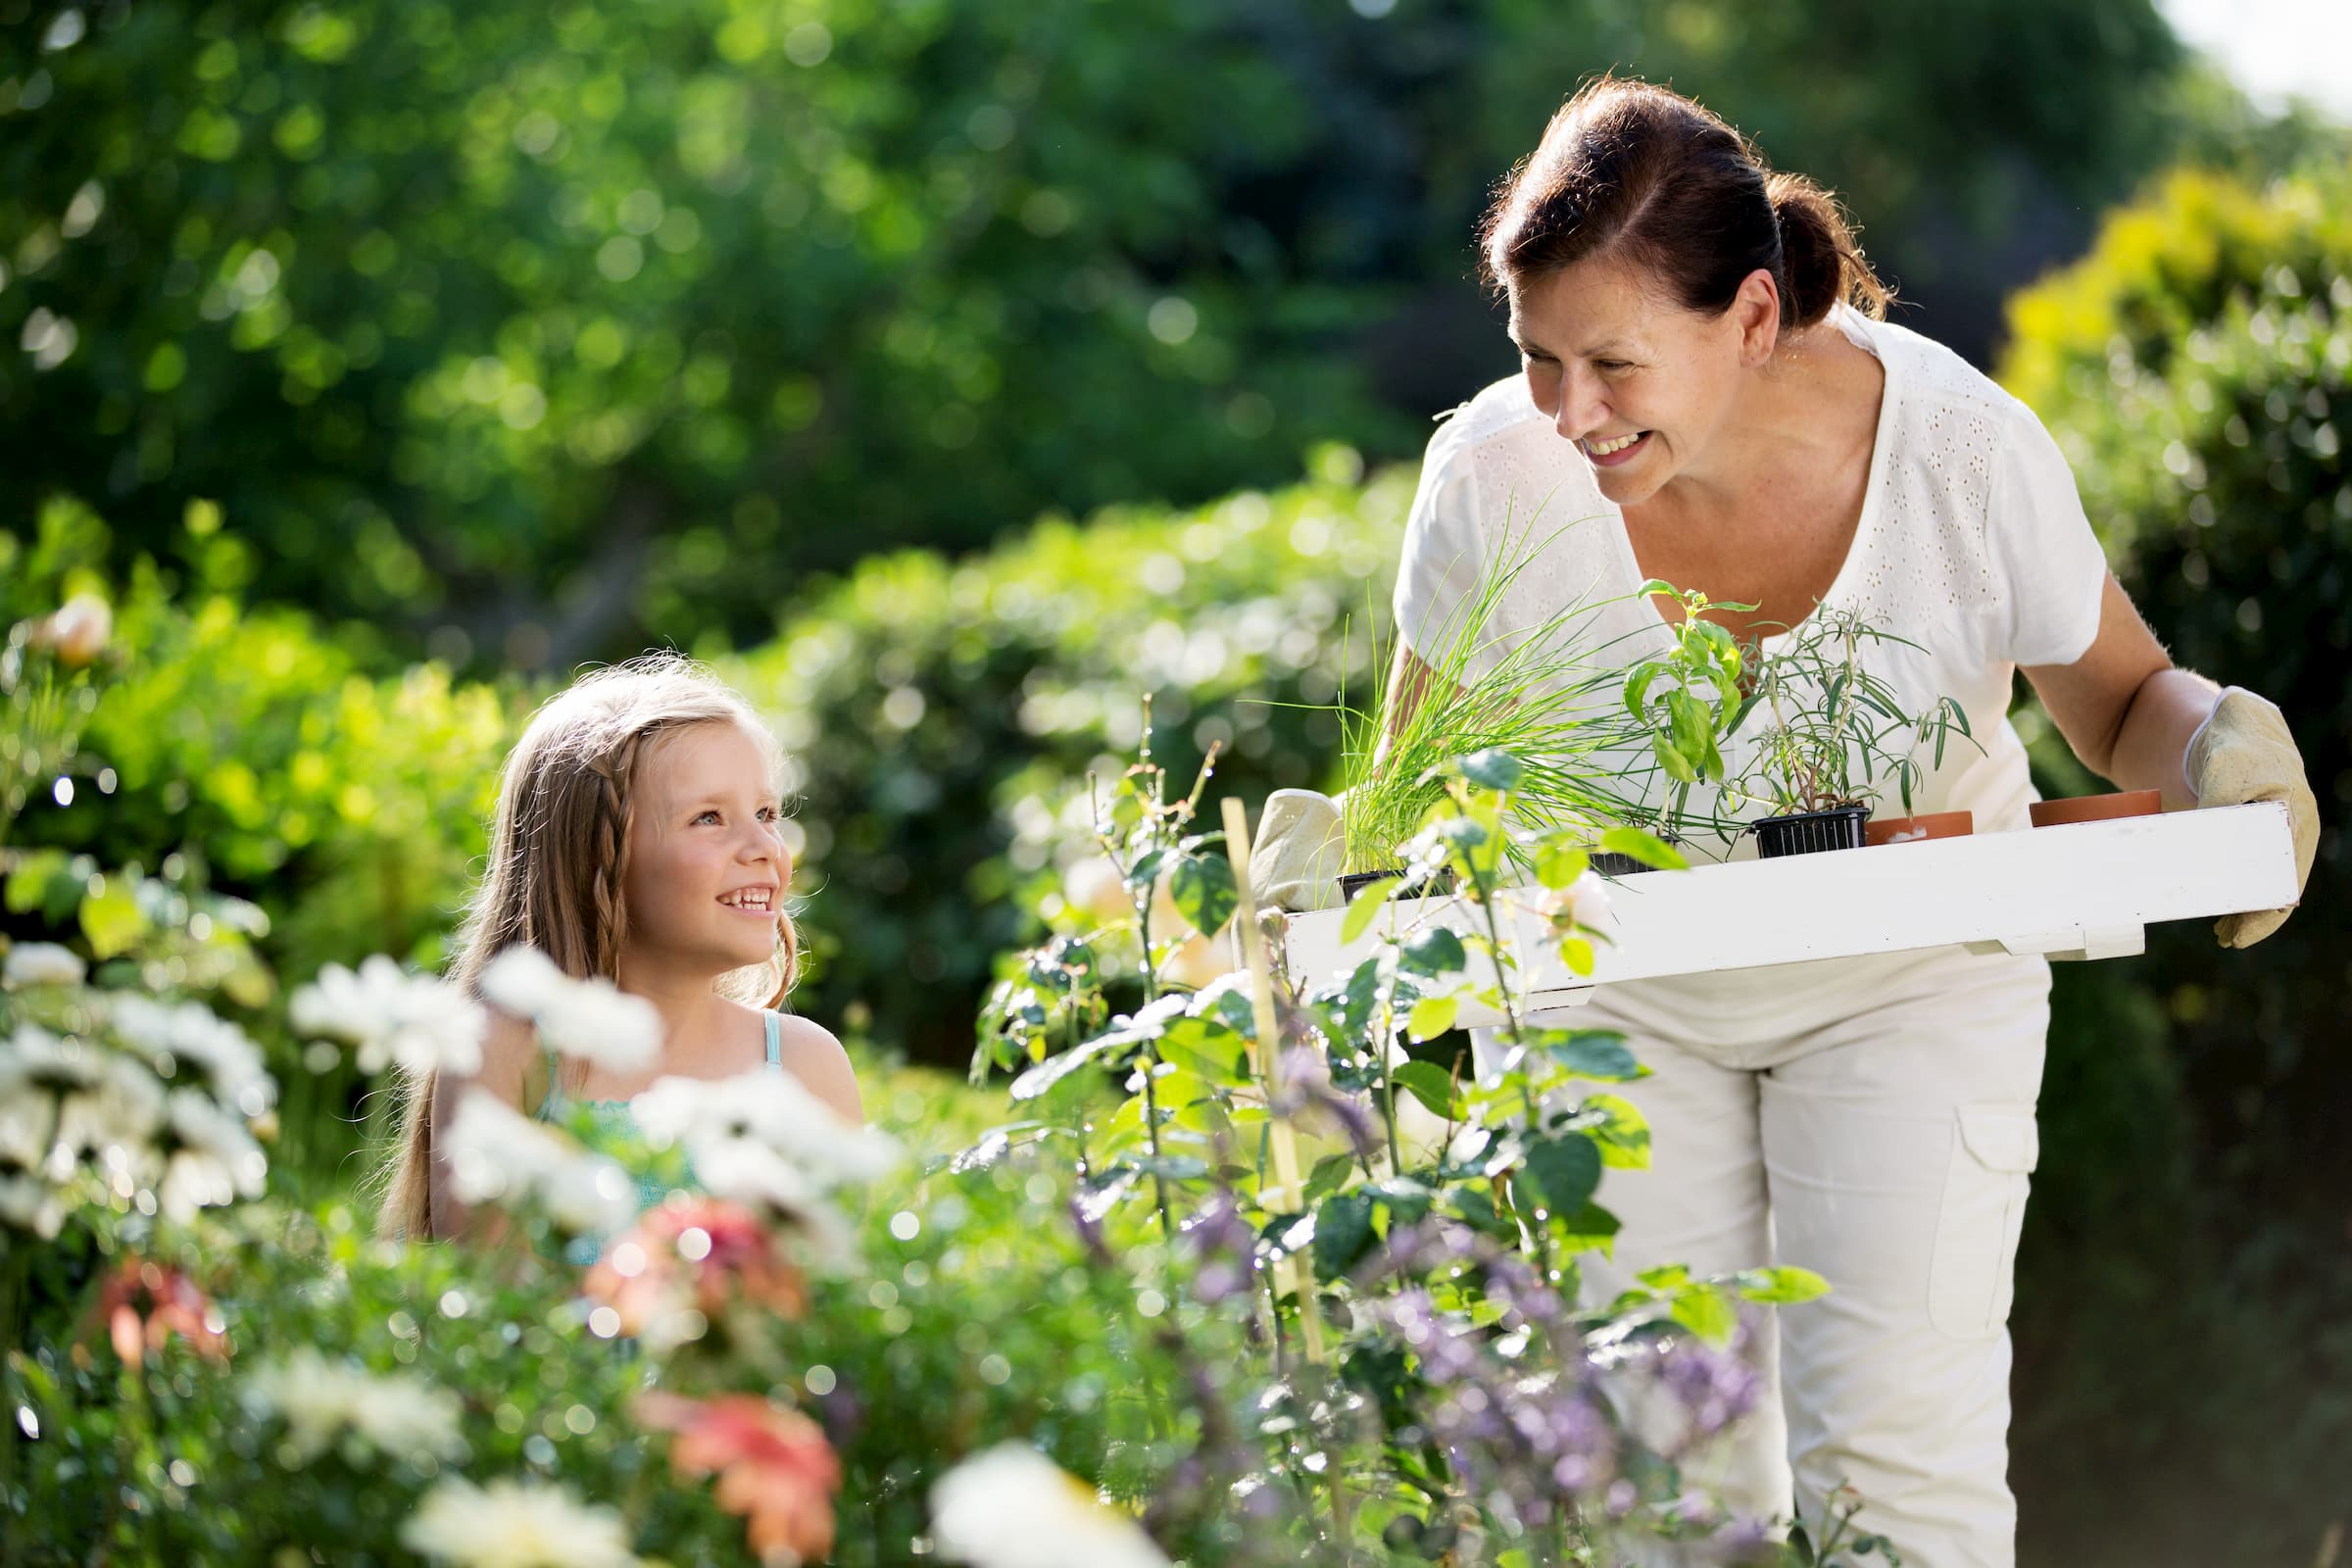 young white girl and elderly white woman working in garden outside